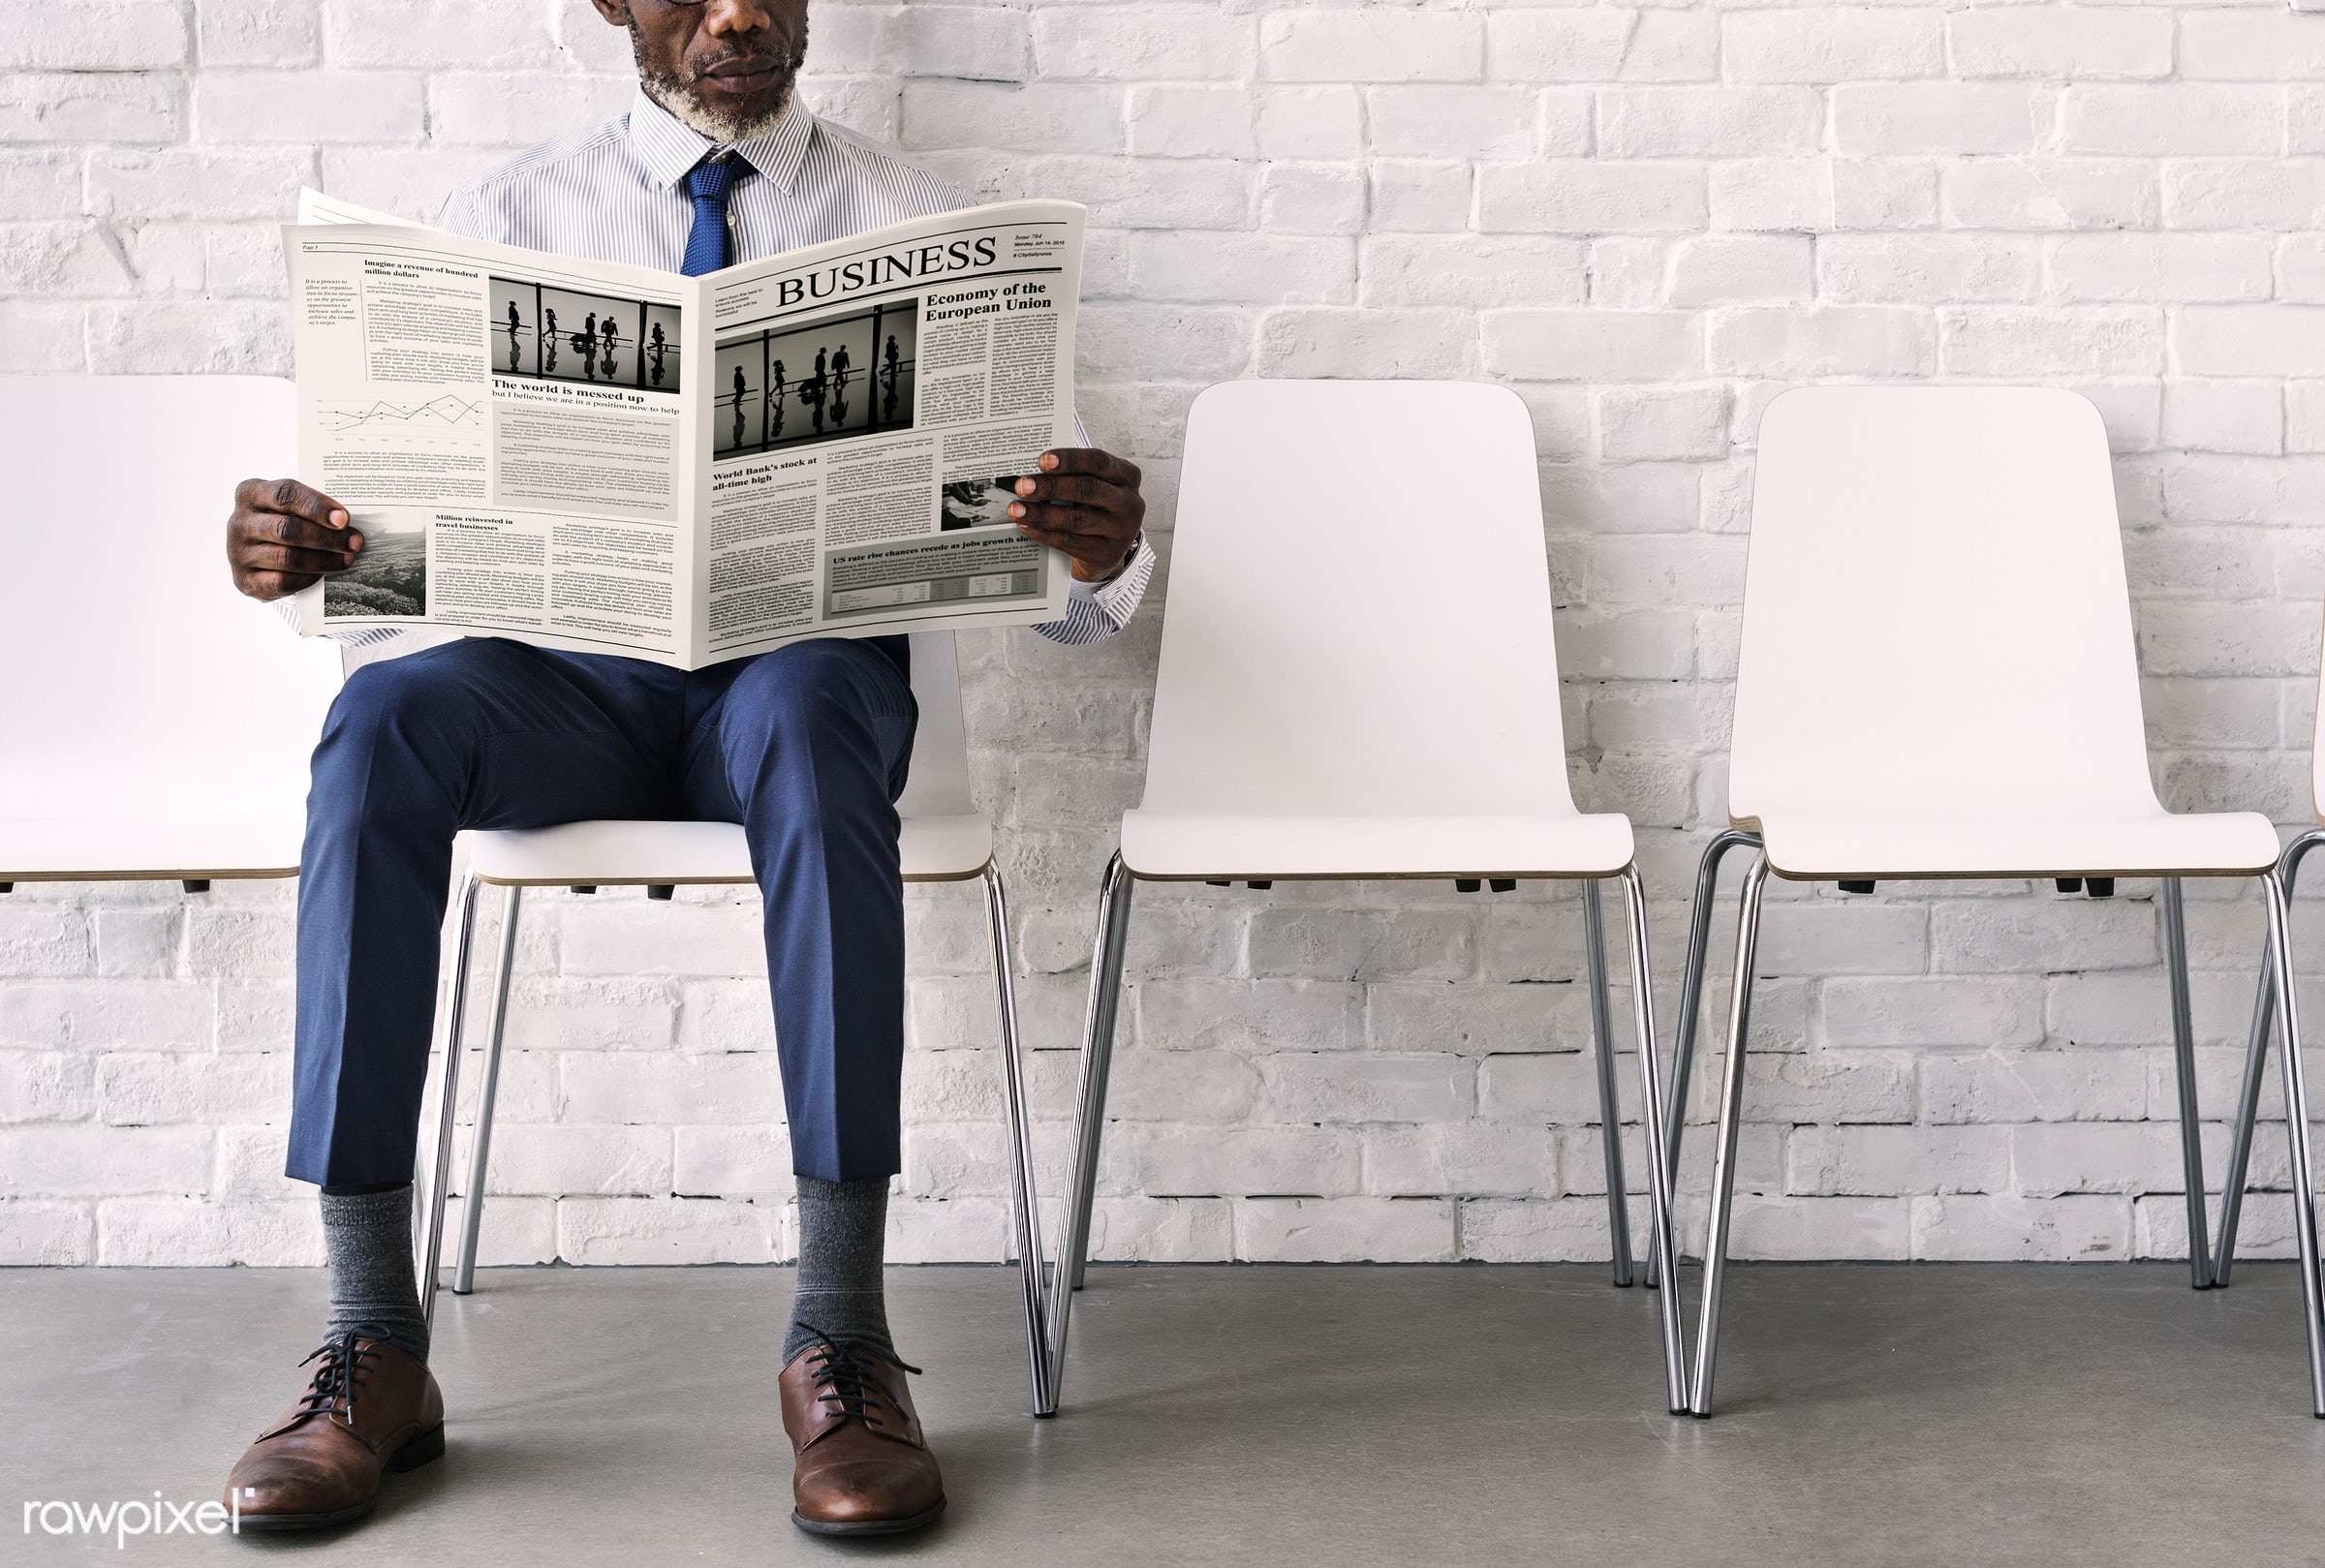 person, reading, employment, indoor, brick wall, holding, recreation, business, caucasian, looking, break, relaxed, read,...